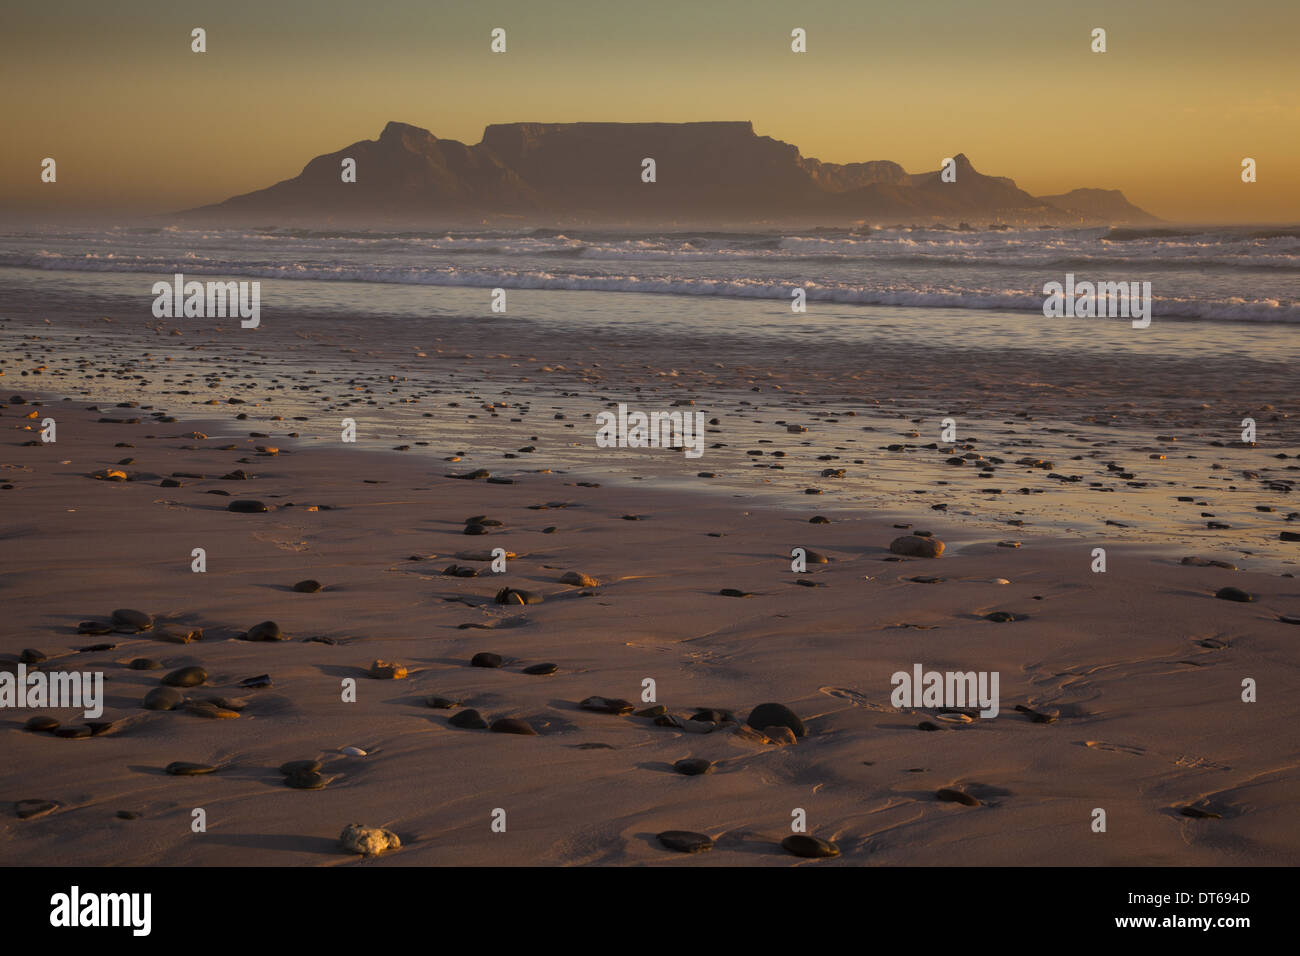 Table Mountain and the outline of Devil's Peak and Lion's Head, viewed from the shores of Blouberg beach in Western Cape. - Stock Image